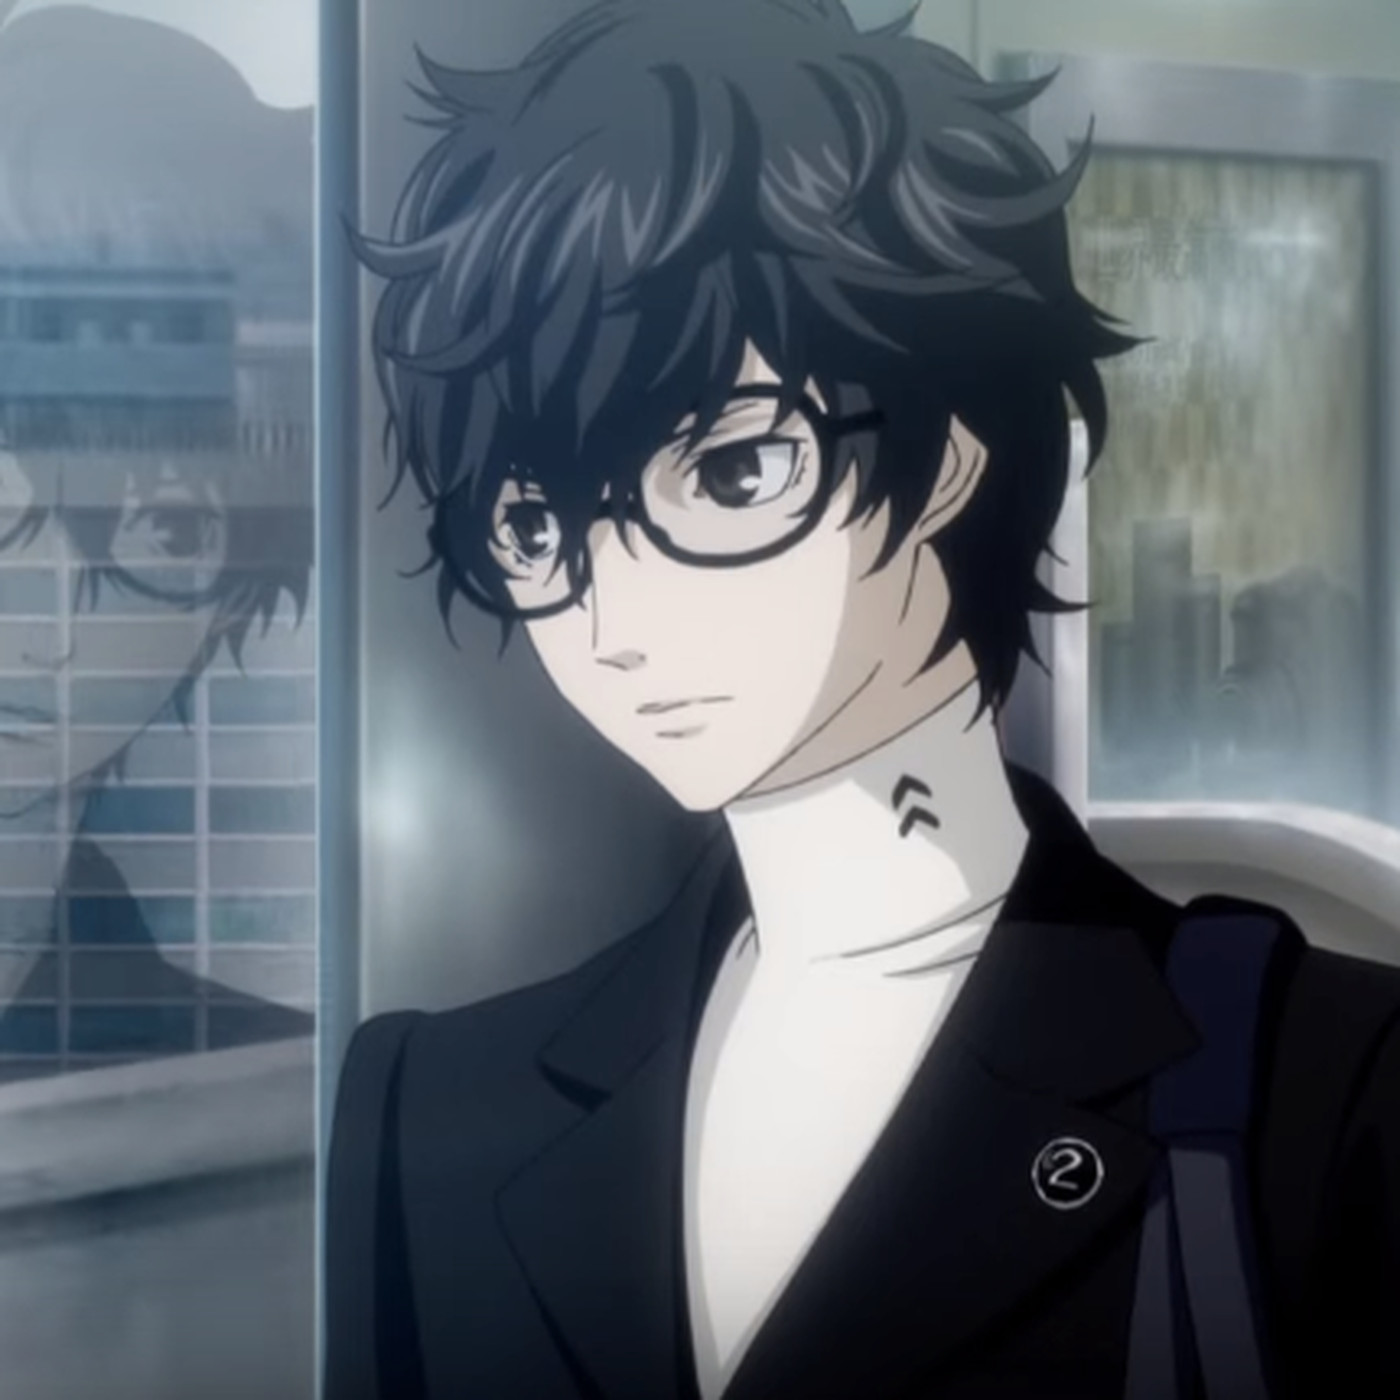 Persona 5 makes a big, but easy-to-fix mistake - The Verge